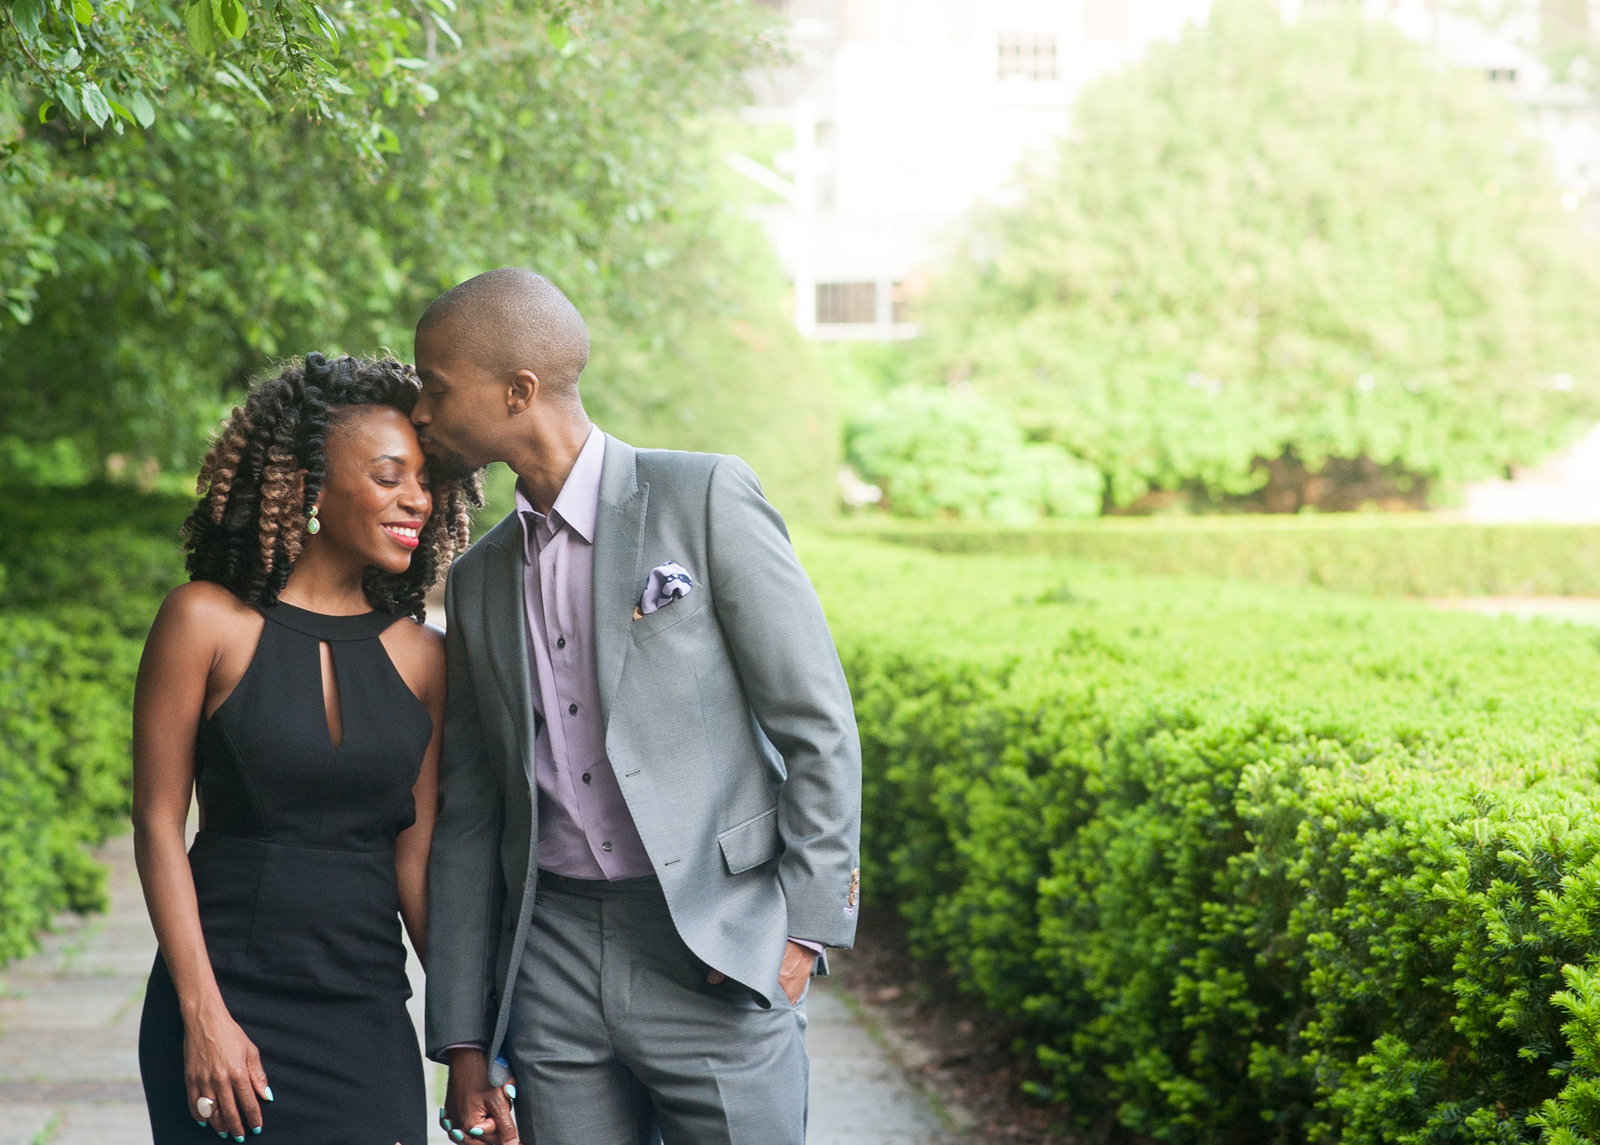 Tam_Jonathan | Conservatory Gardens, New York Engagement Session | Sachel Samone Photography-79